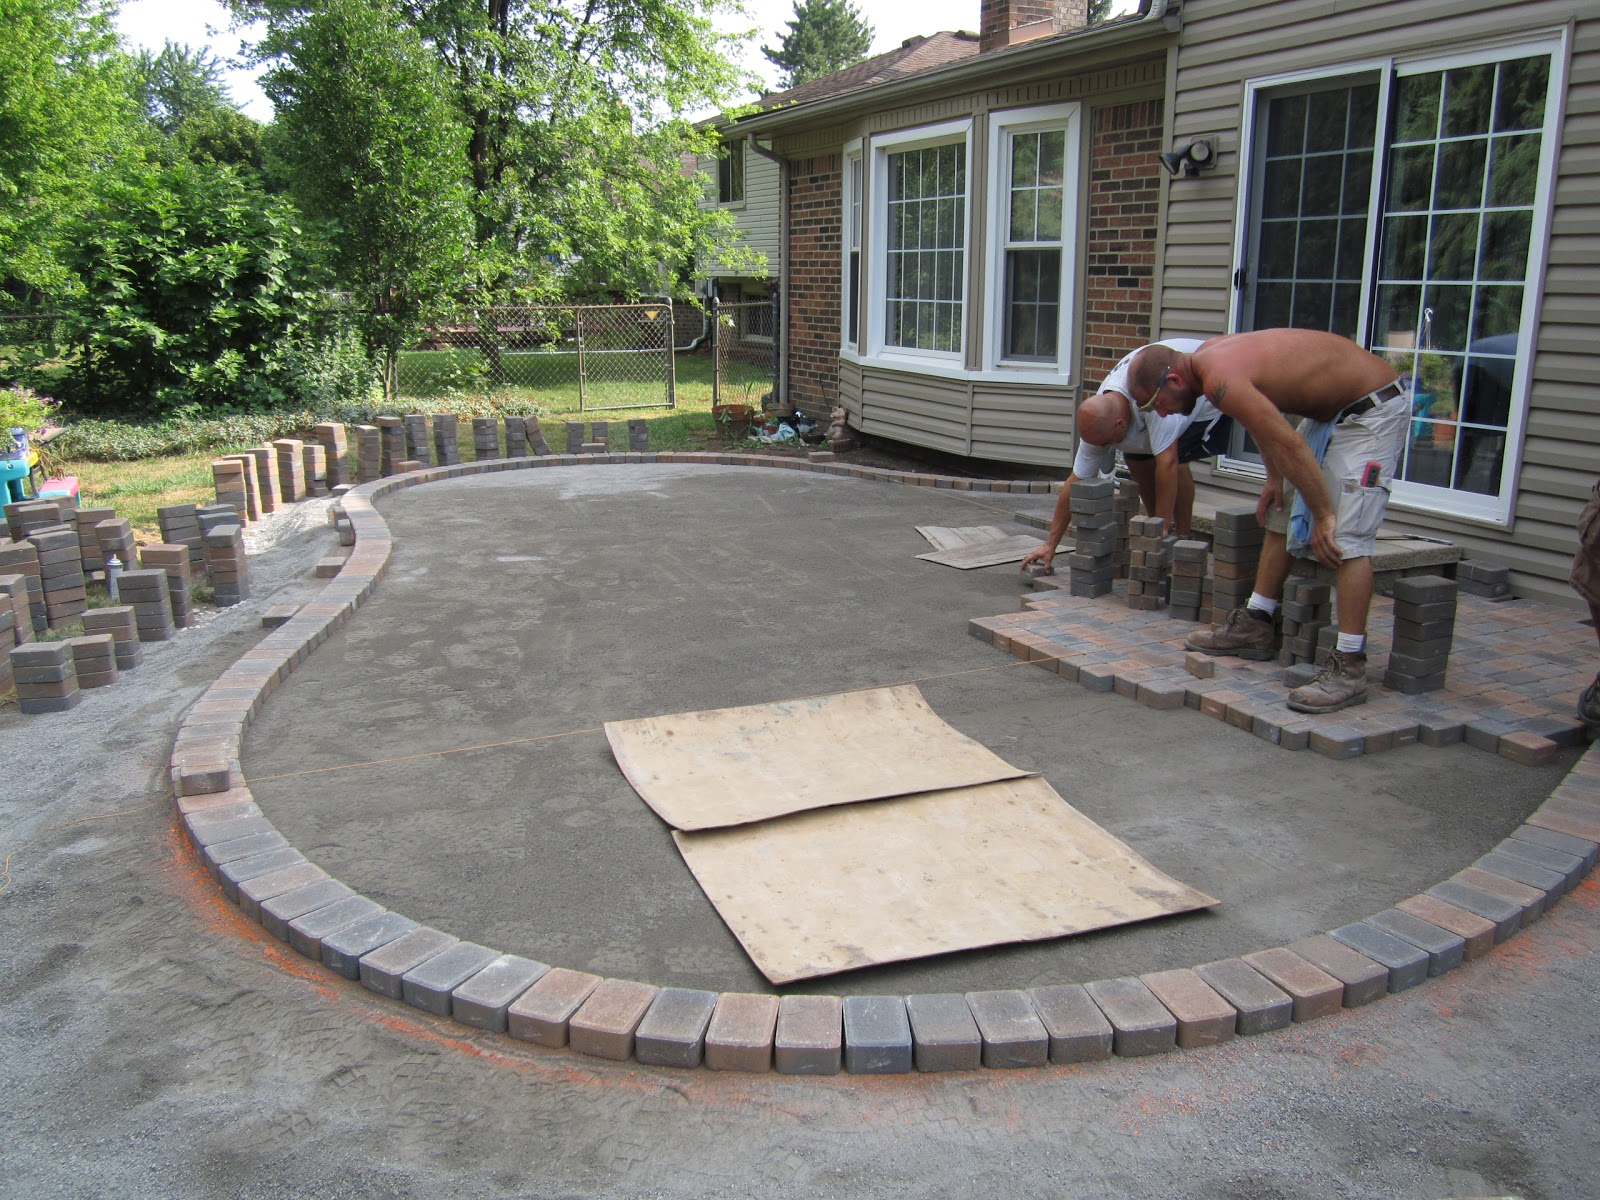 Brick paver patio ideas patio design ideas for Patio designs